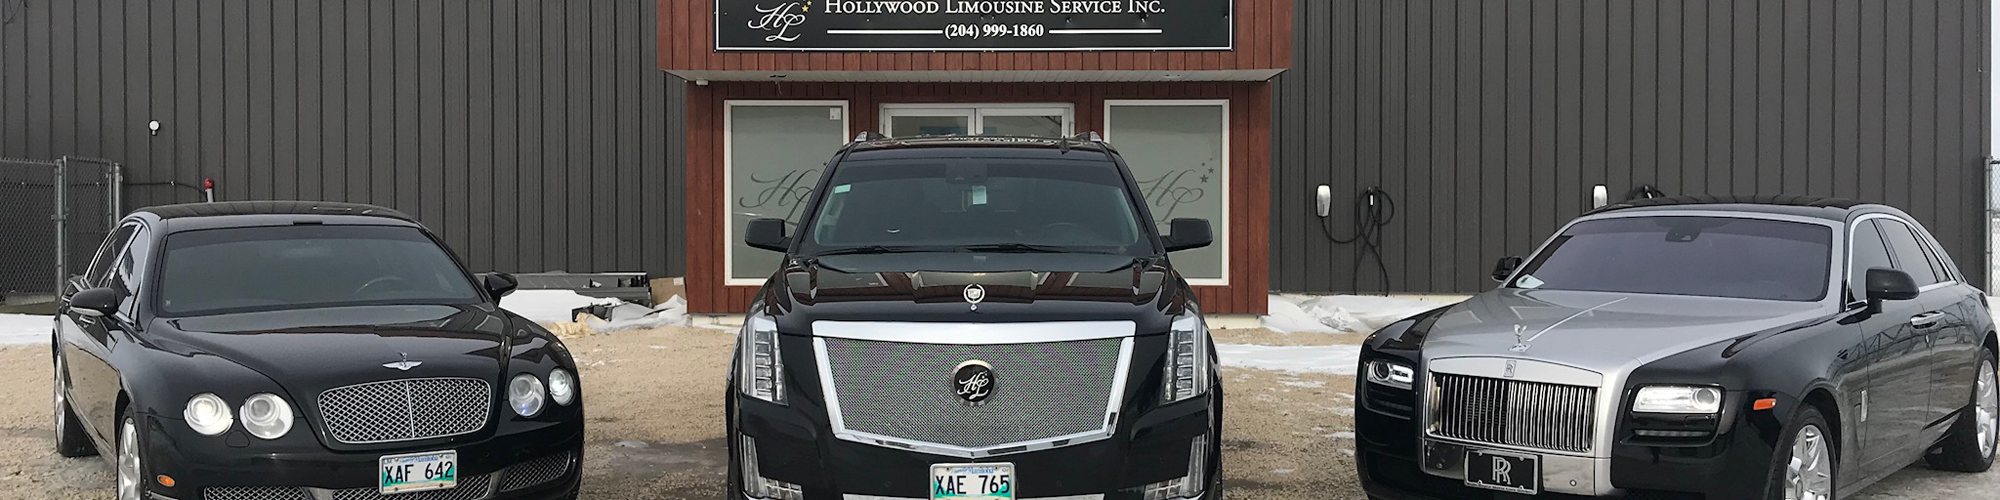 Hollywood Limousine Service Inc. head office